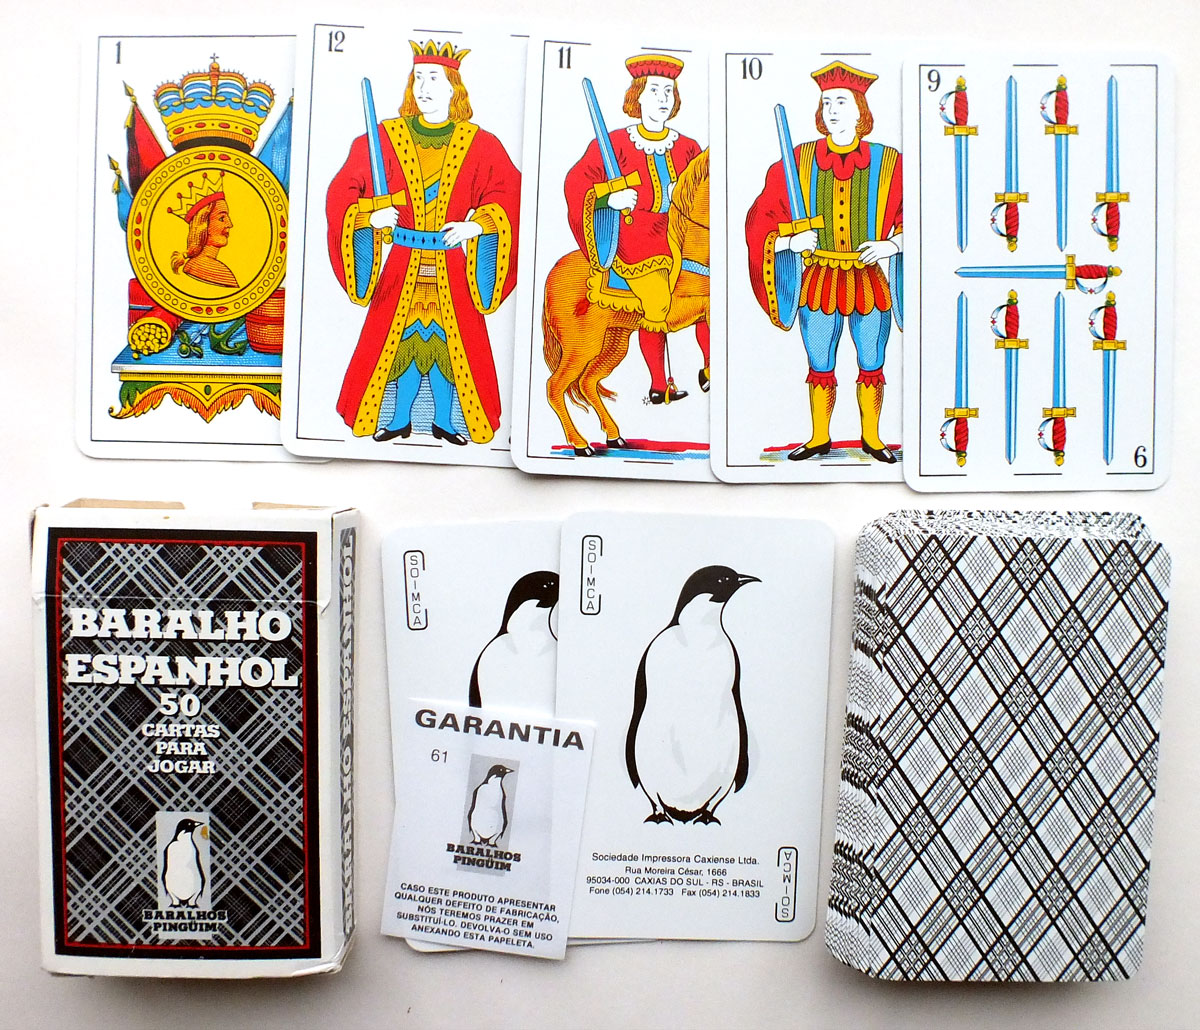 SOIMCA's standard Spanish-suited playing cards, 1999